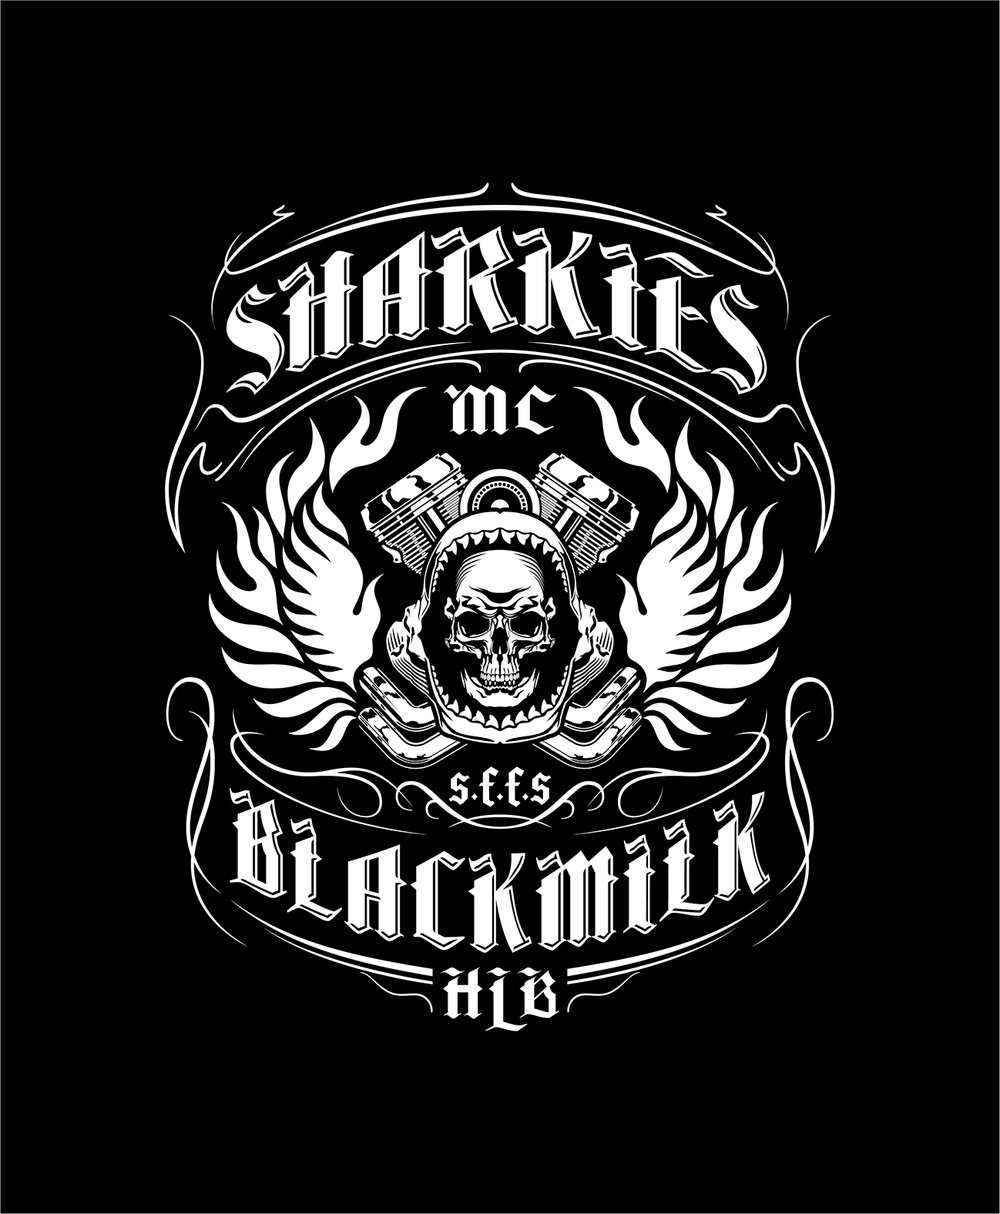 sharkie bikers final.jpg